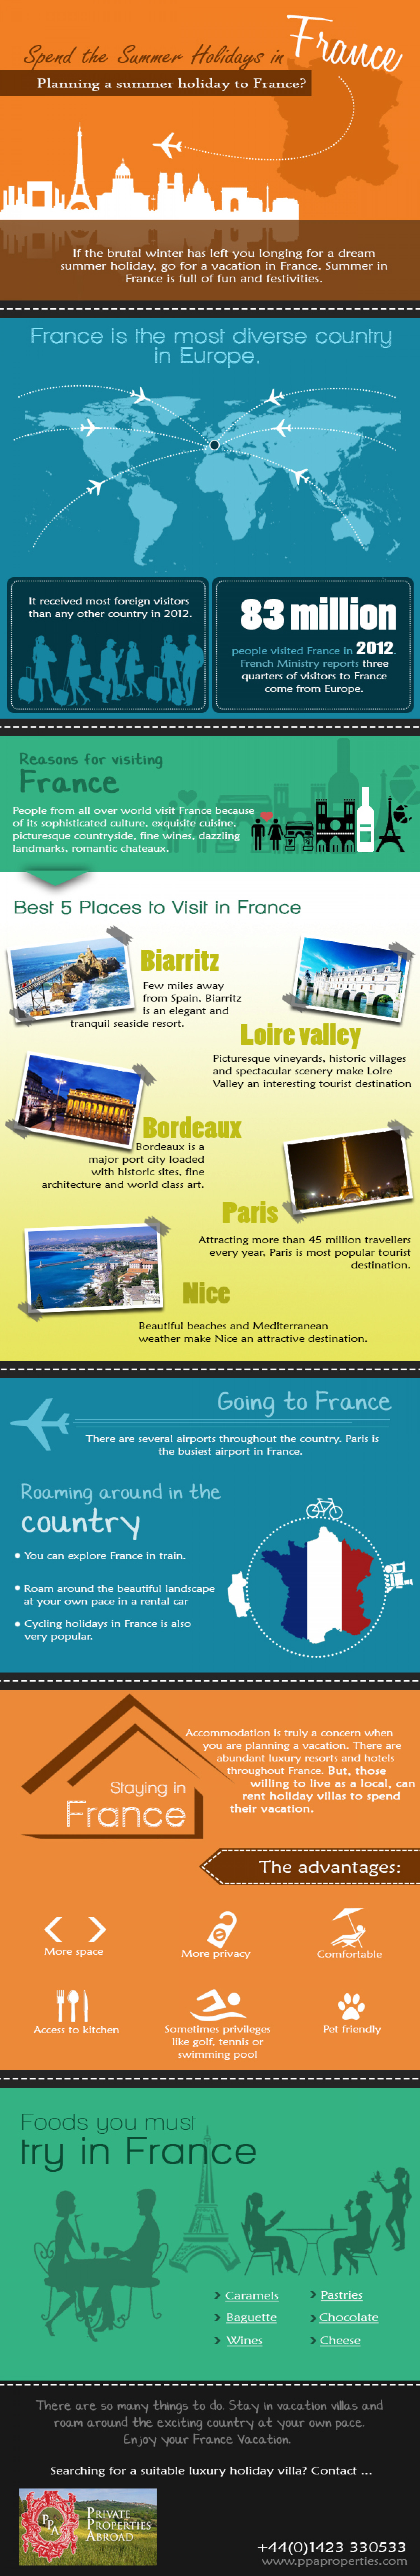 Spend the Summer Holidays in France Infographic